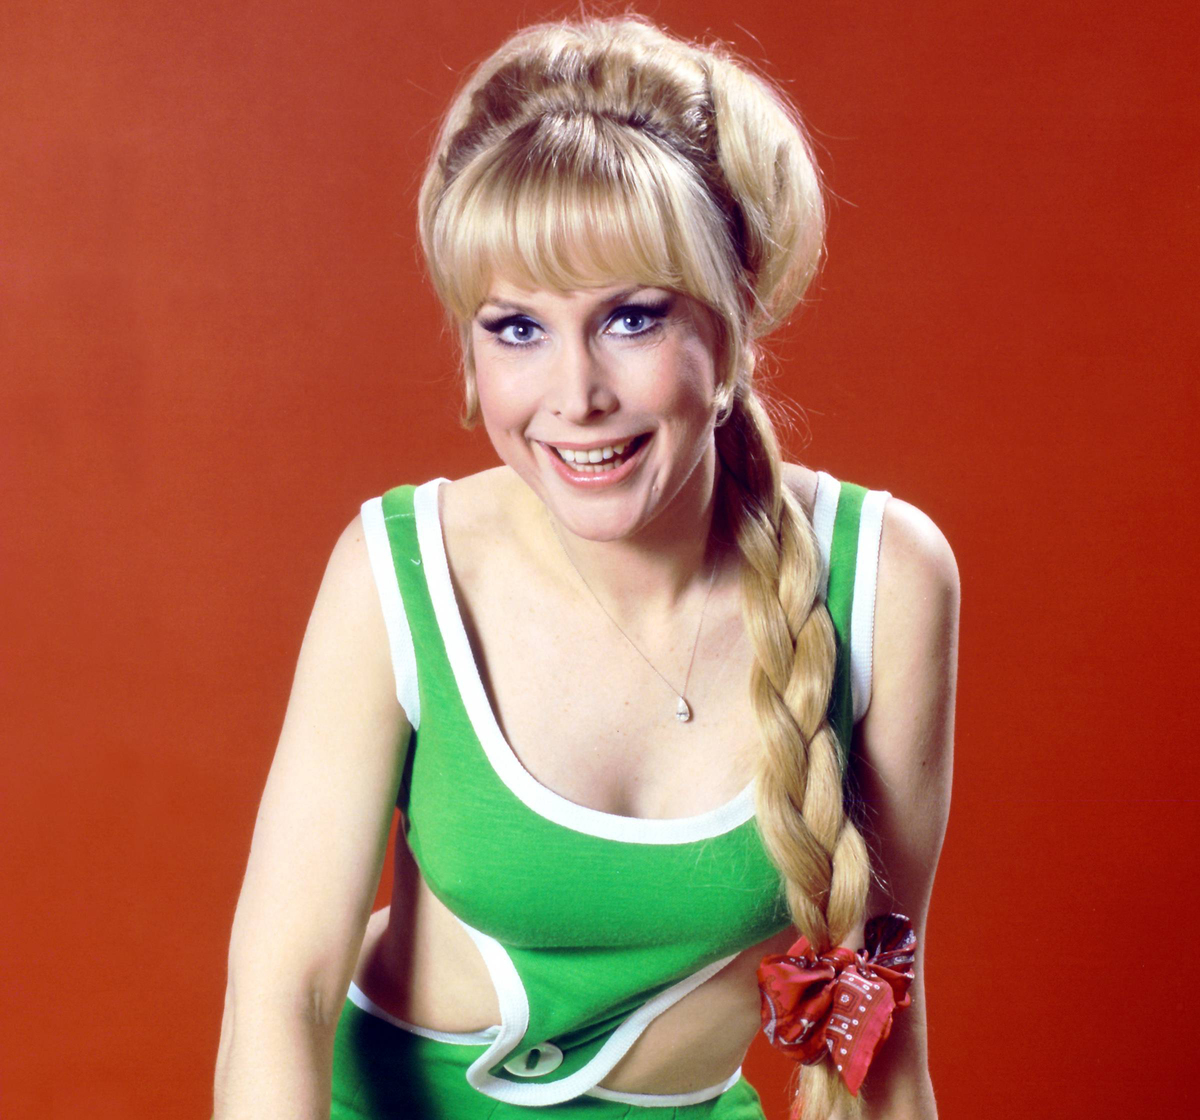 Barbara Eden, US actress, wearing a green and white outfit, smiling with her hair plaited, with a red bow, in a studio portrait, against a red background, circa 1965.